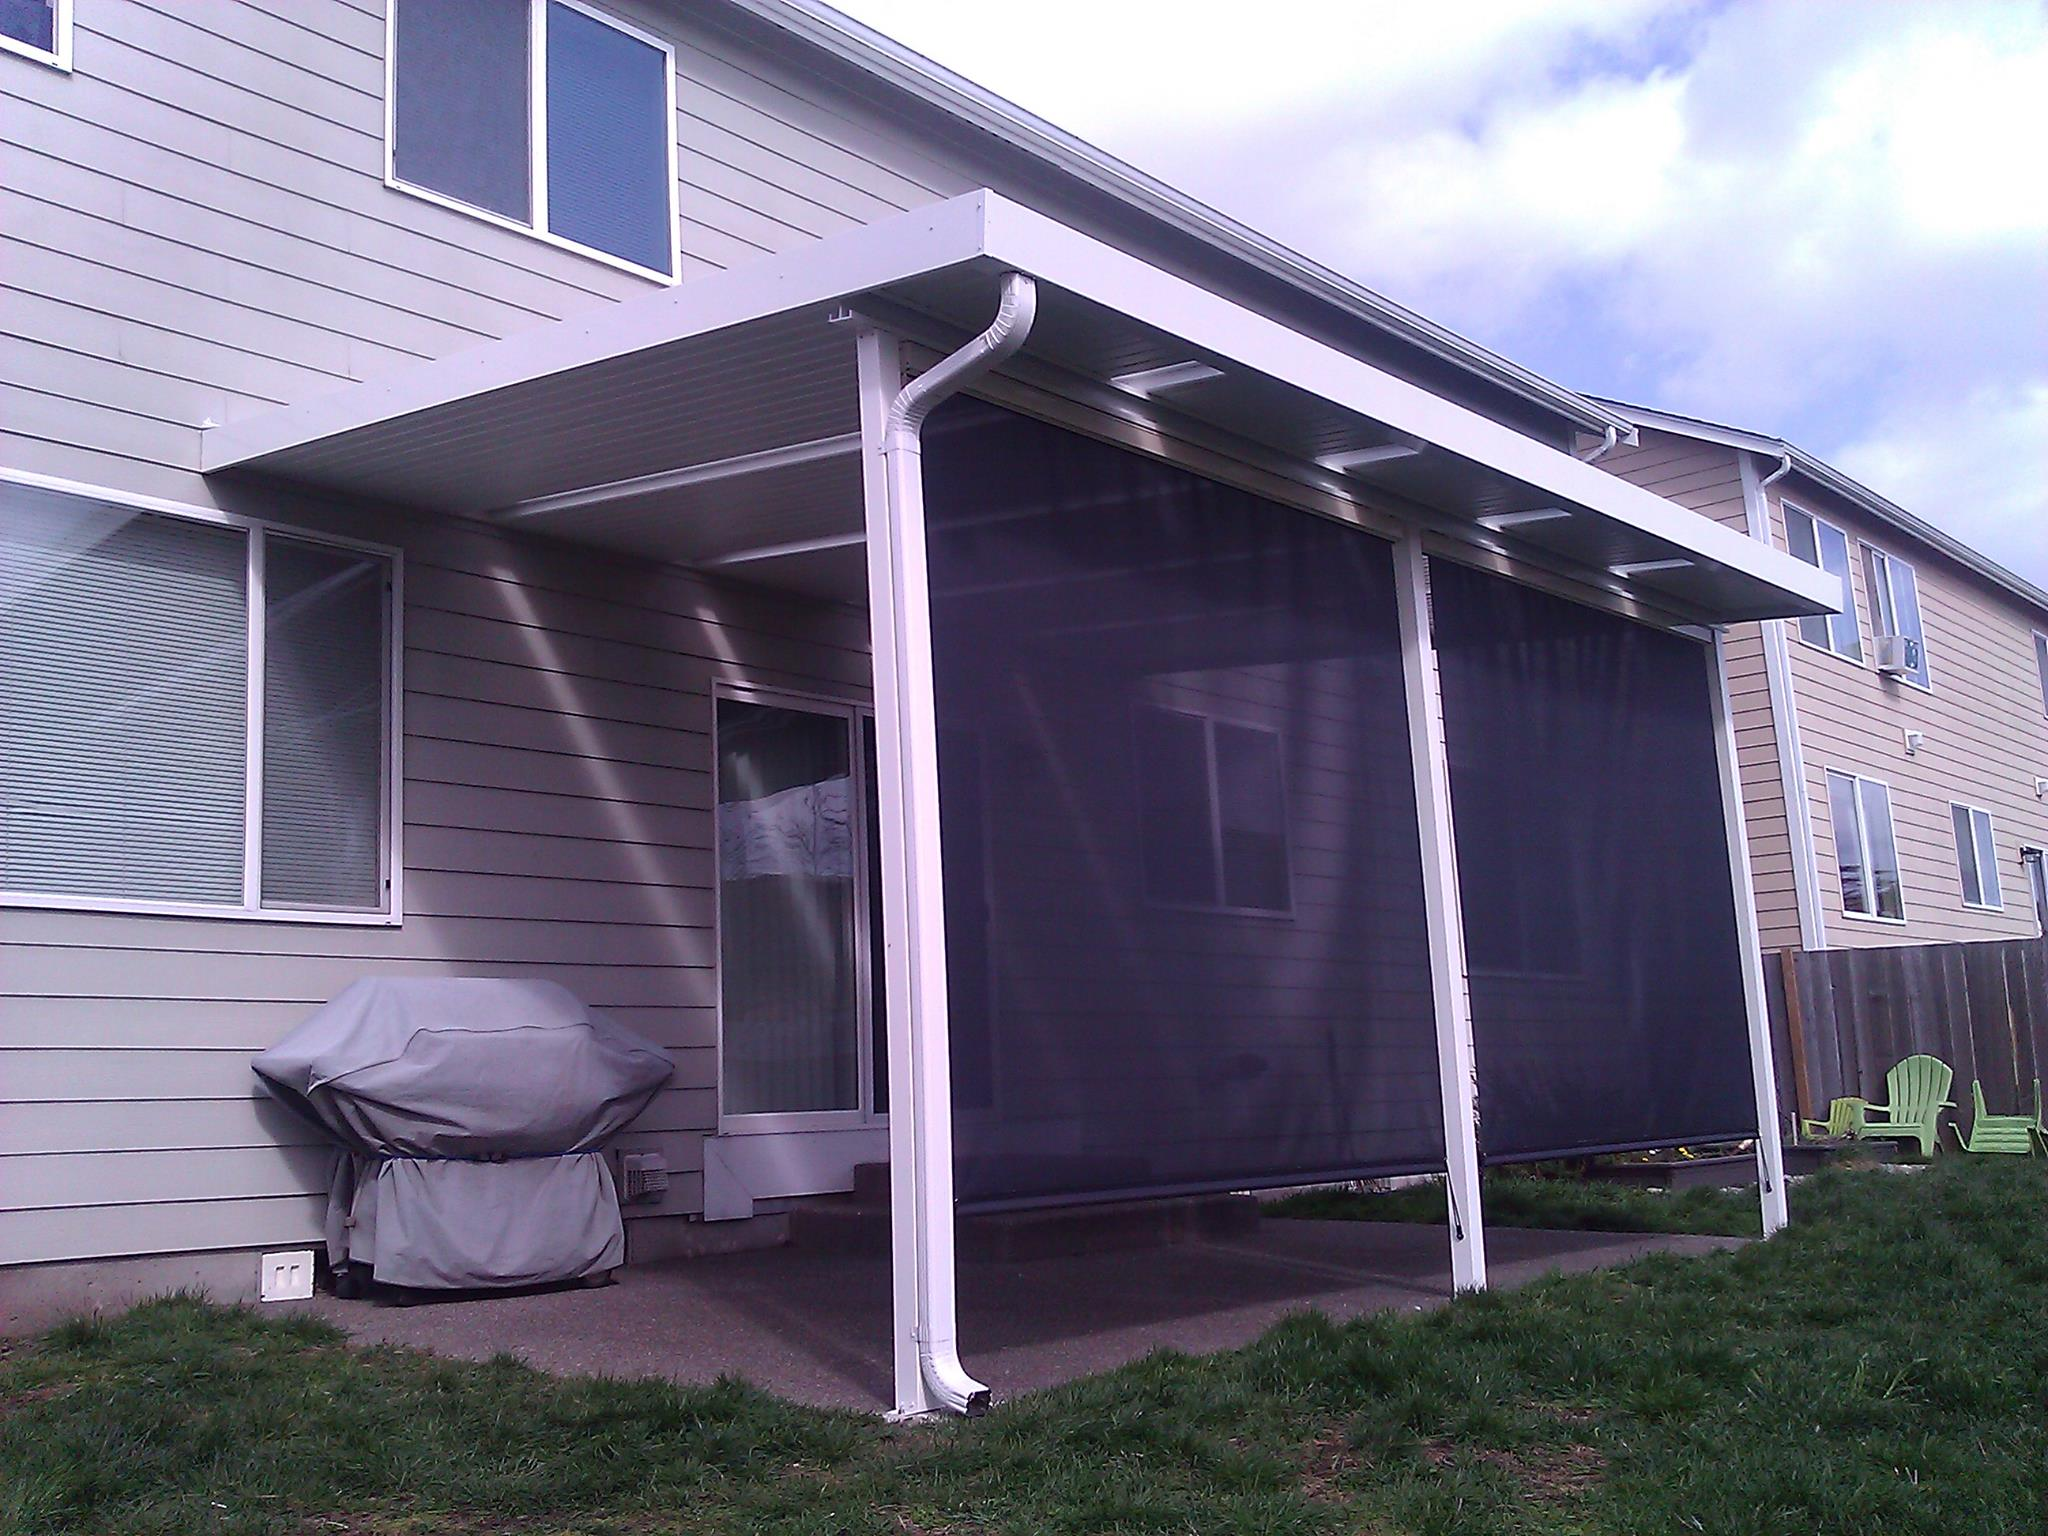 Patio cover with privacy screen built in Thurston County, Washington.